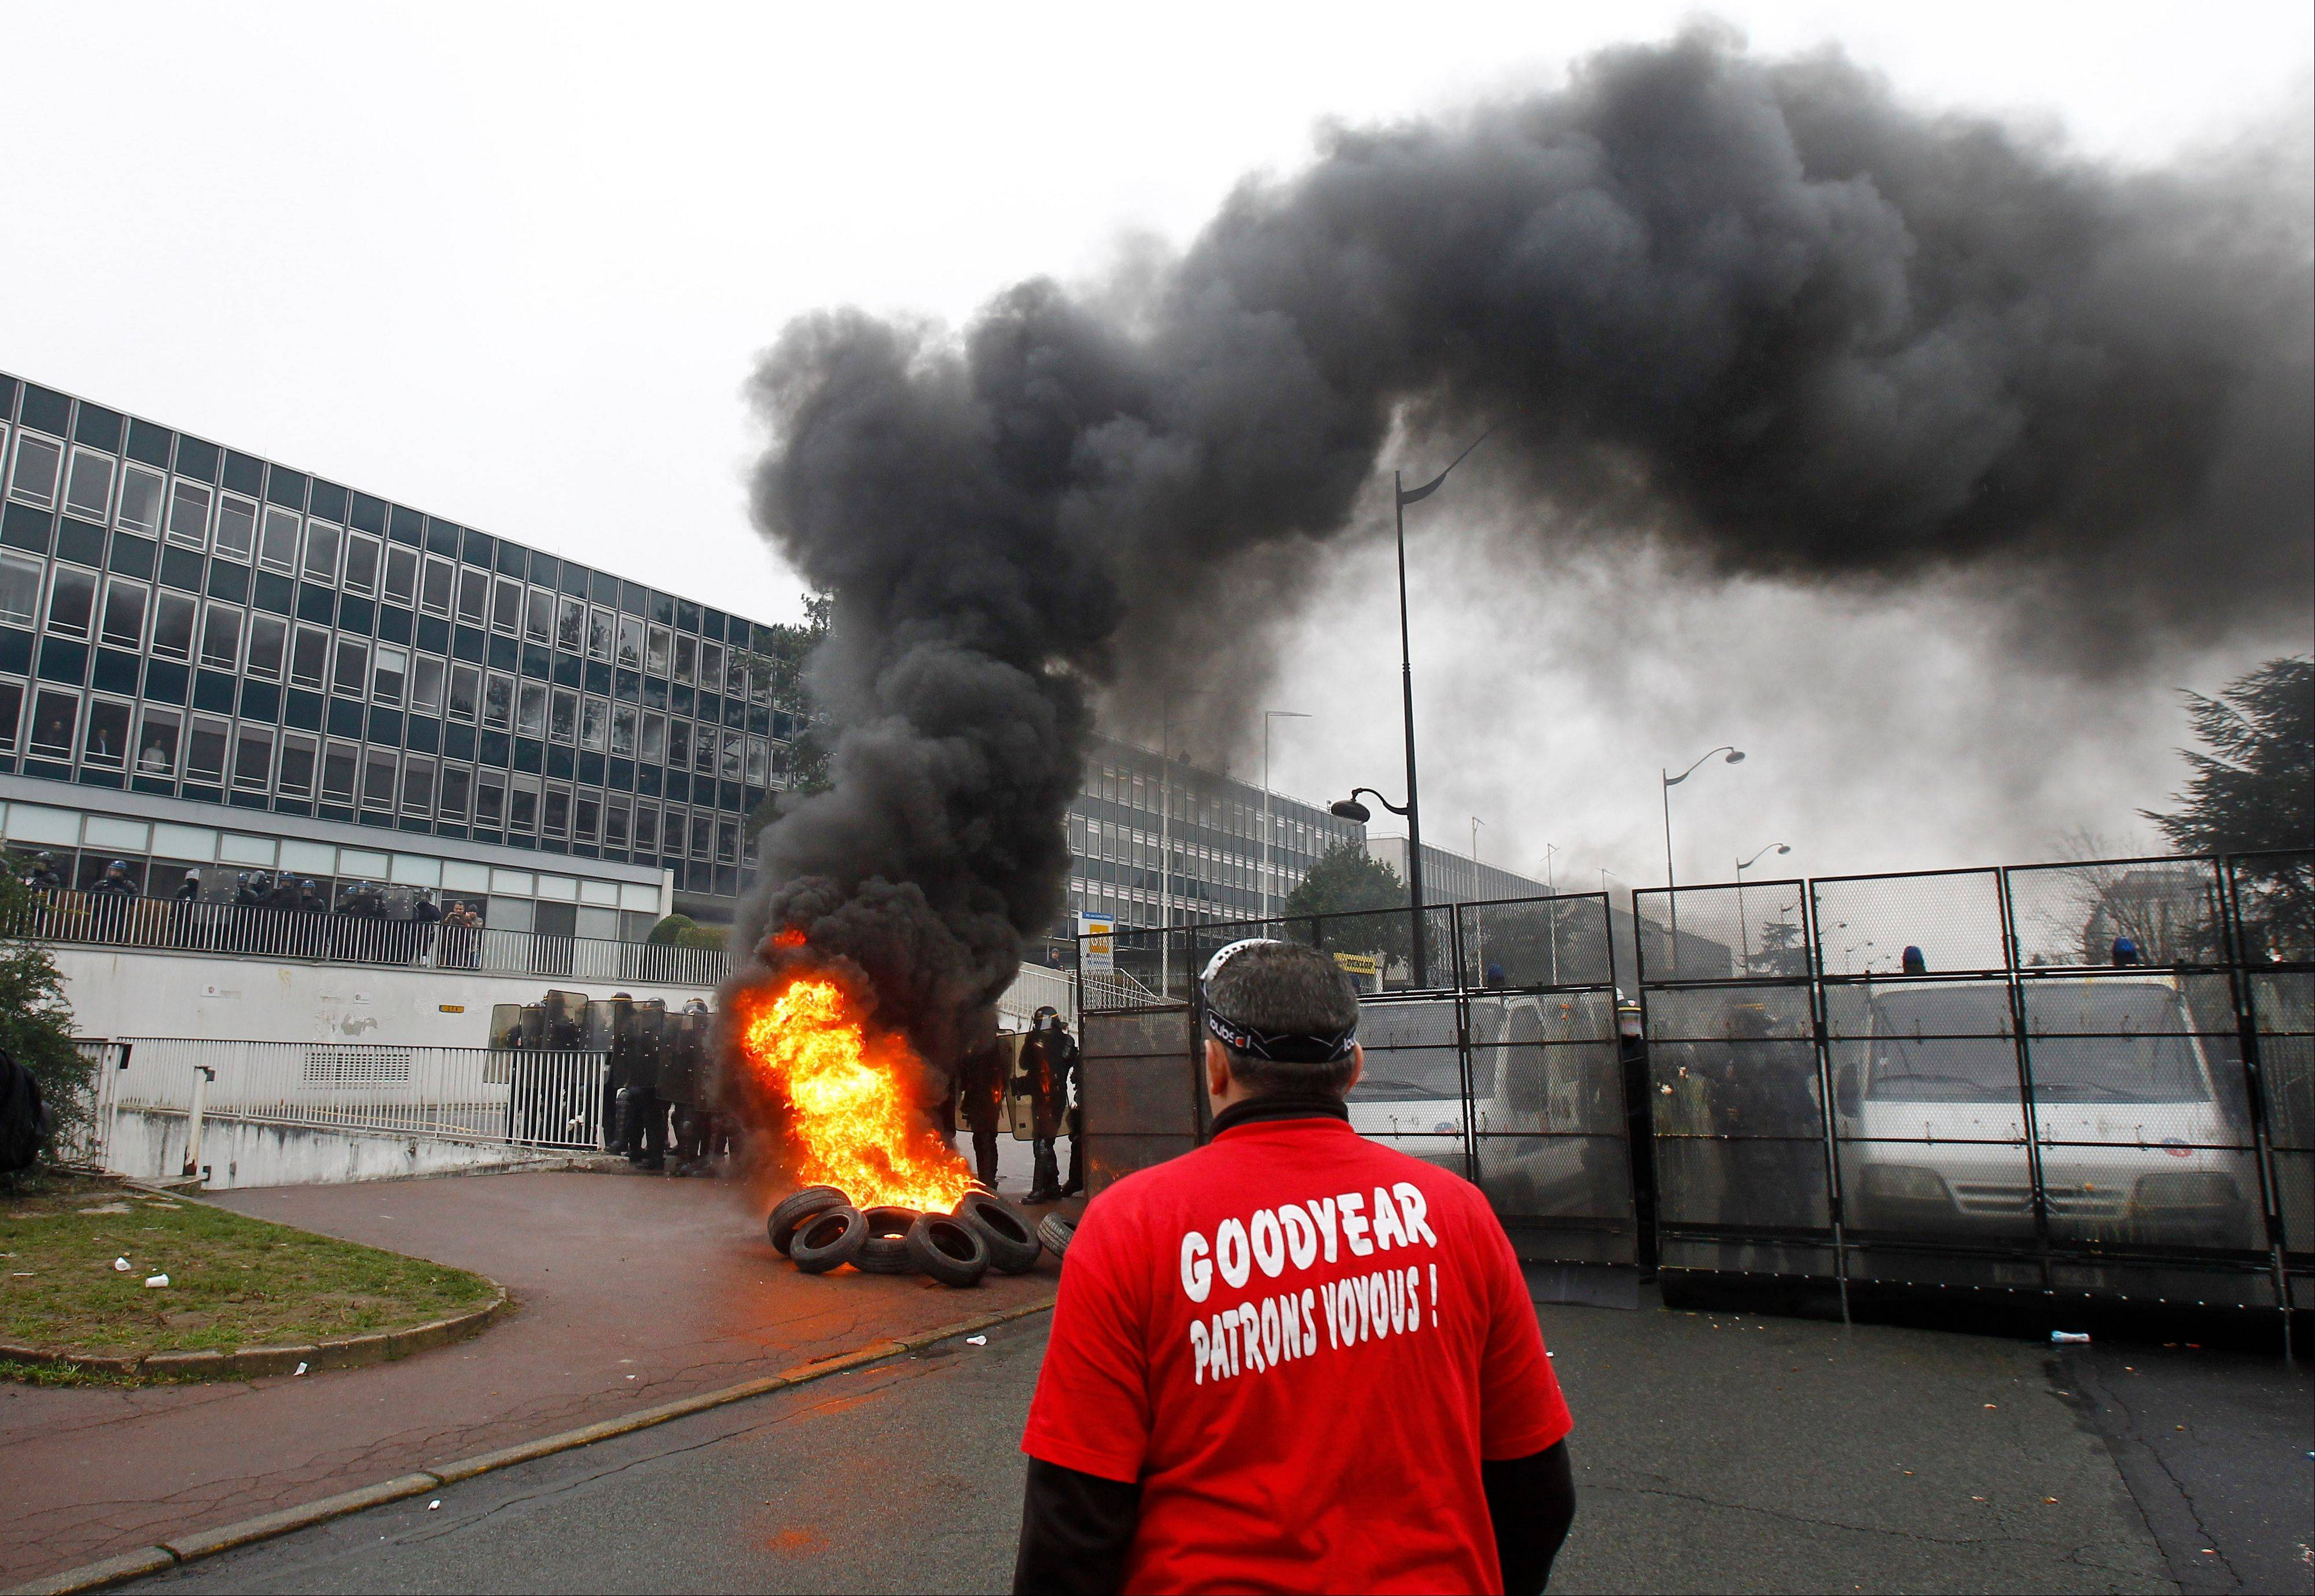 A Goodyear worker wearing a tee shirt reading �Goodyear, thug bosses� stands near burning tires, as police officers form a line during a demonstration against layoffs, at the Goodyear headquarters in Rueil Malmaison, west of Paris. Tensions � and even confrontation � between unions and management have long been the norm in France.